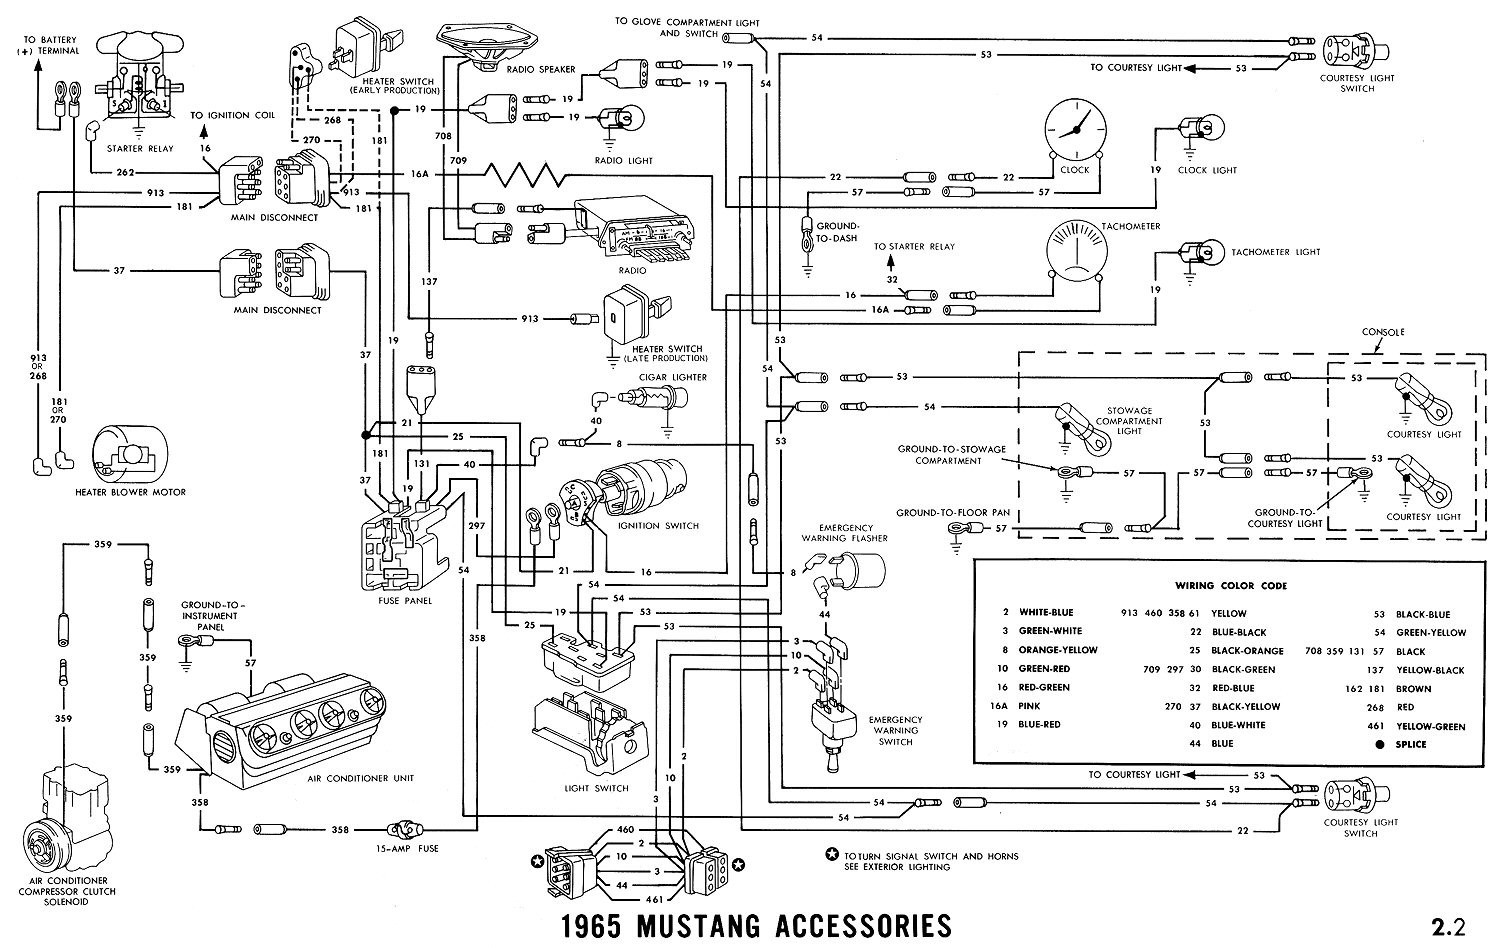 [DIAGRAM_34OR]  A31DA 1966 Mustang Radio Wiring Diagram | Wiring Library | 1966 Mustang Wiring Diagrams |  | Wiring Library